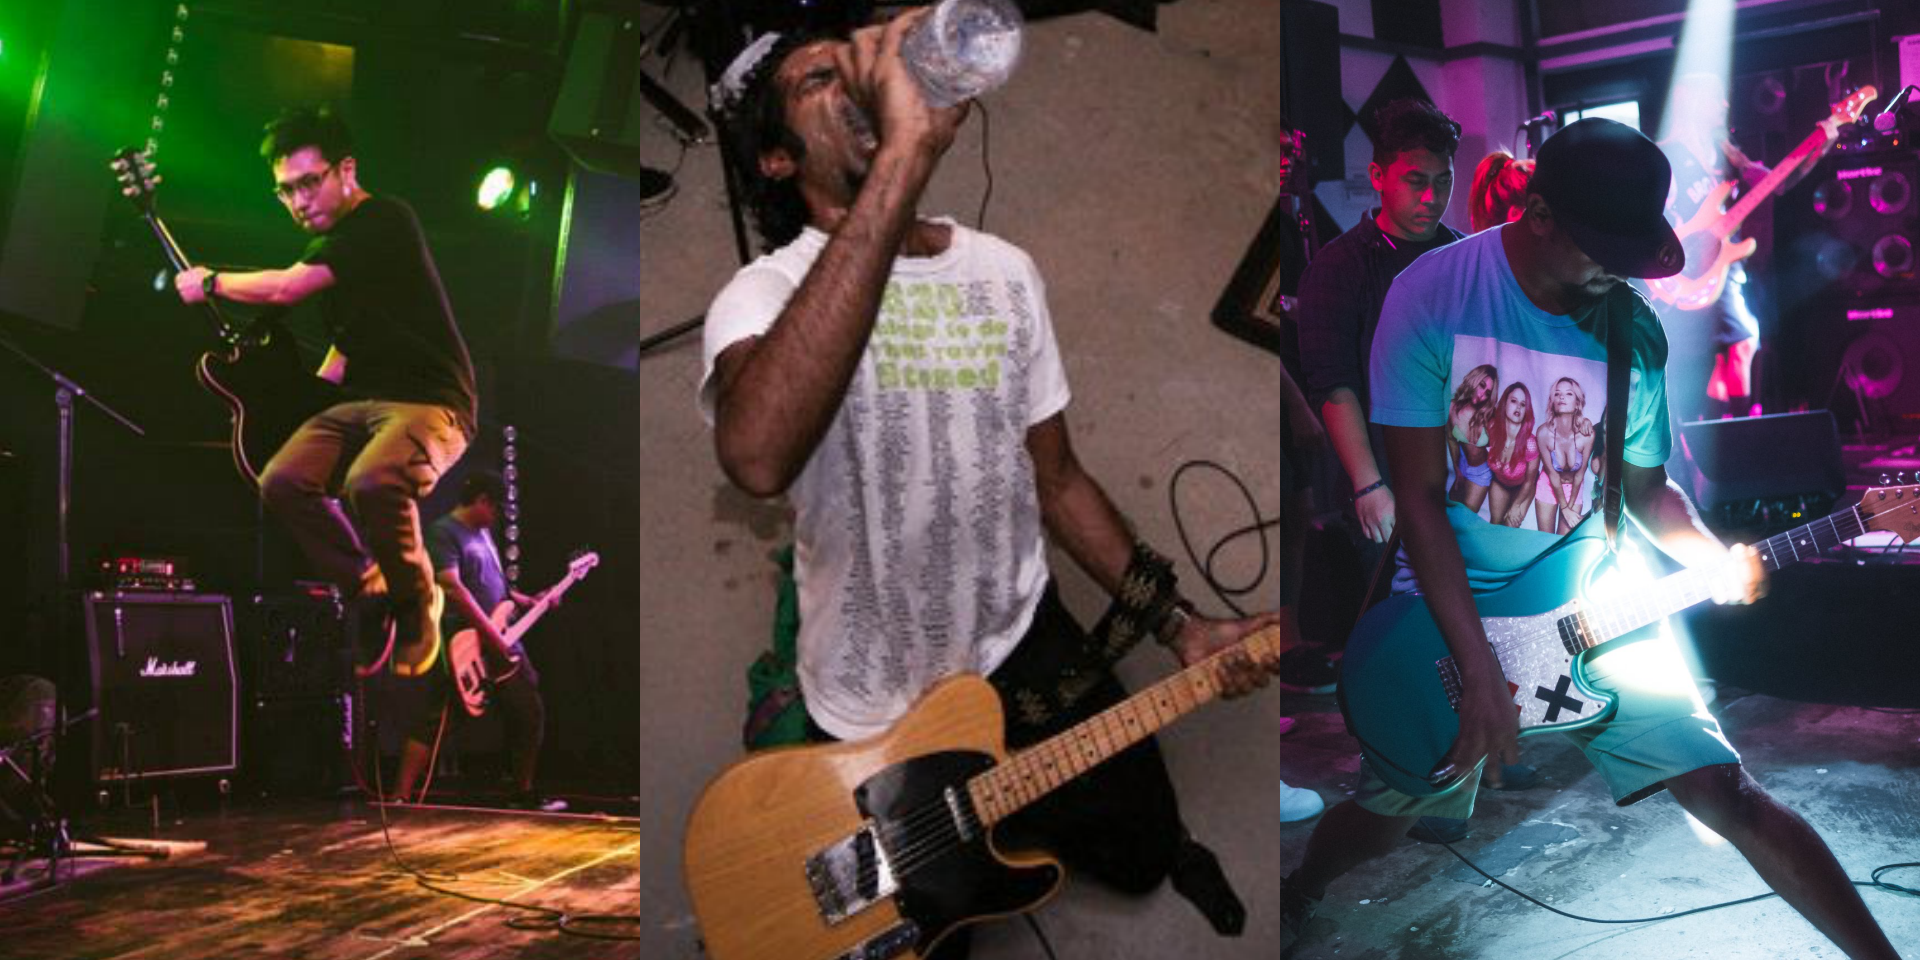 Thambi K Seaow, Plainsunset, Take-Off and Amterible to perform together next month